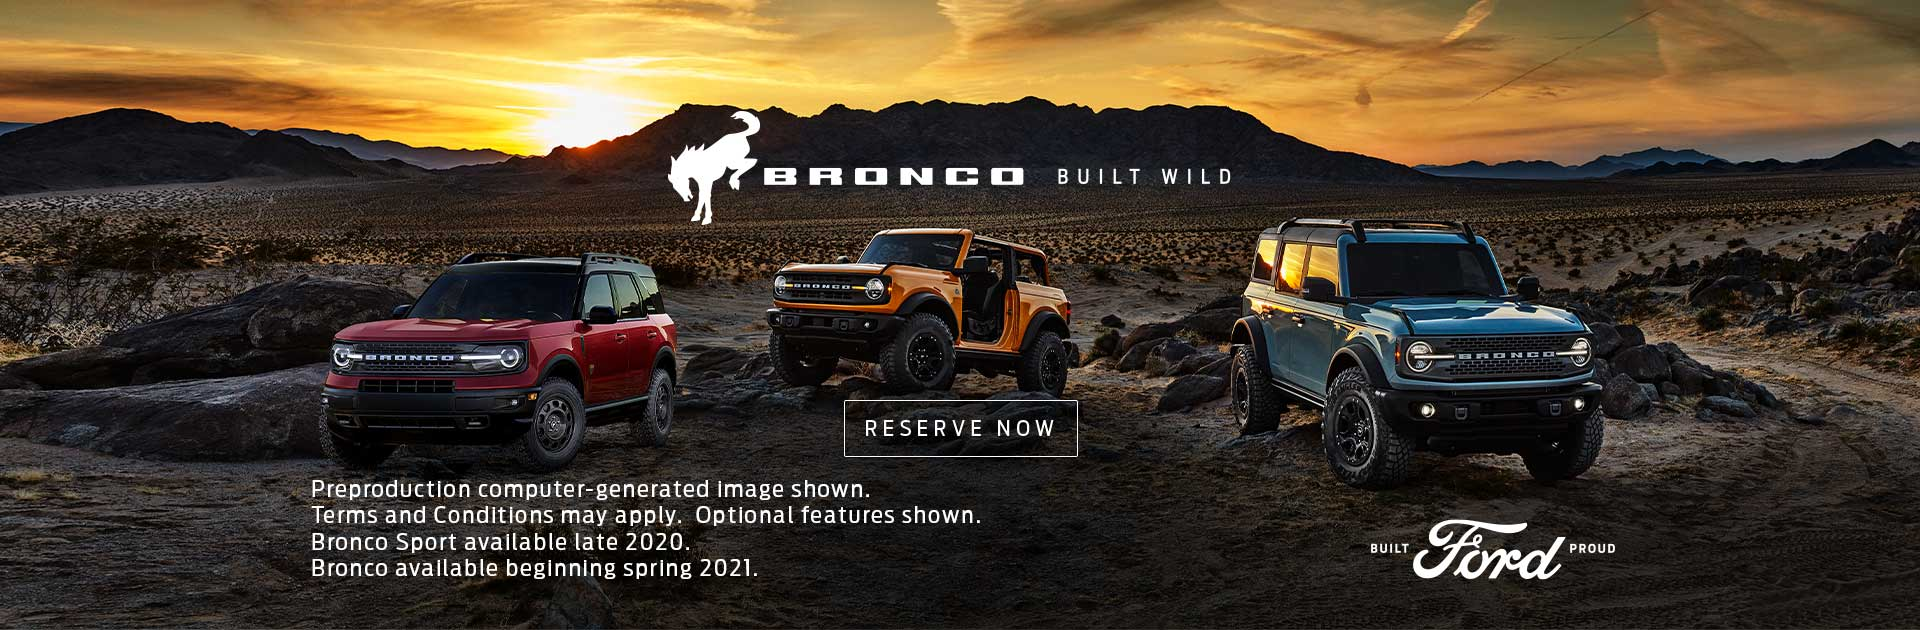 Broncoreveal Dealercon 1920x630 2